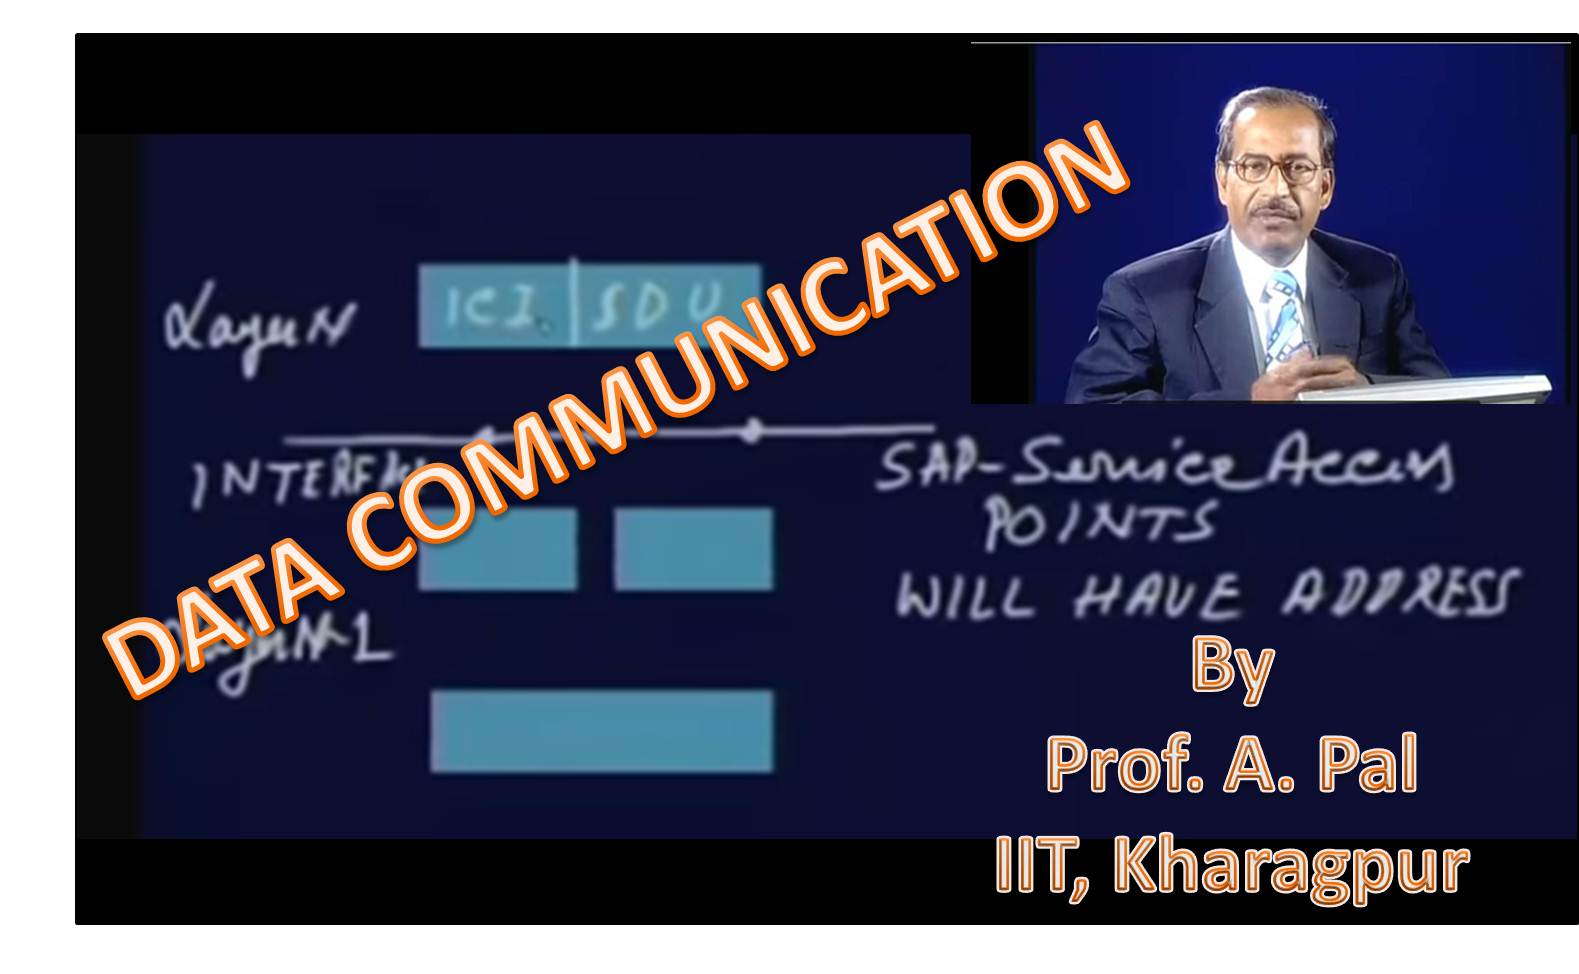 http://study.aisectonline.com/images/SubCategory/Video Lecture Series on Data Communication by Prof. A. Pal, IIT Kharagpur.jpg